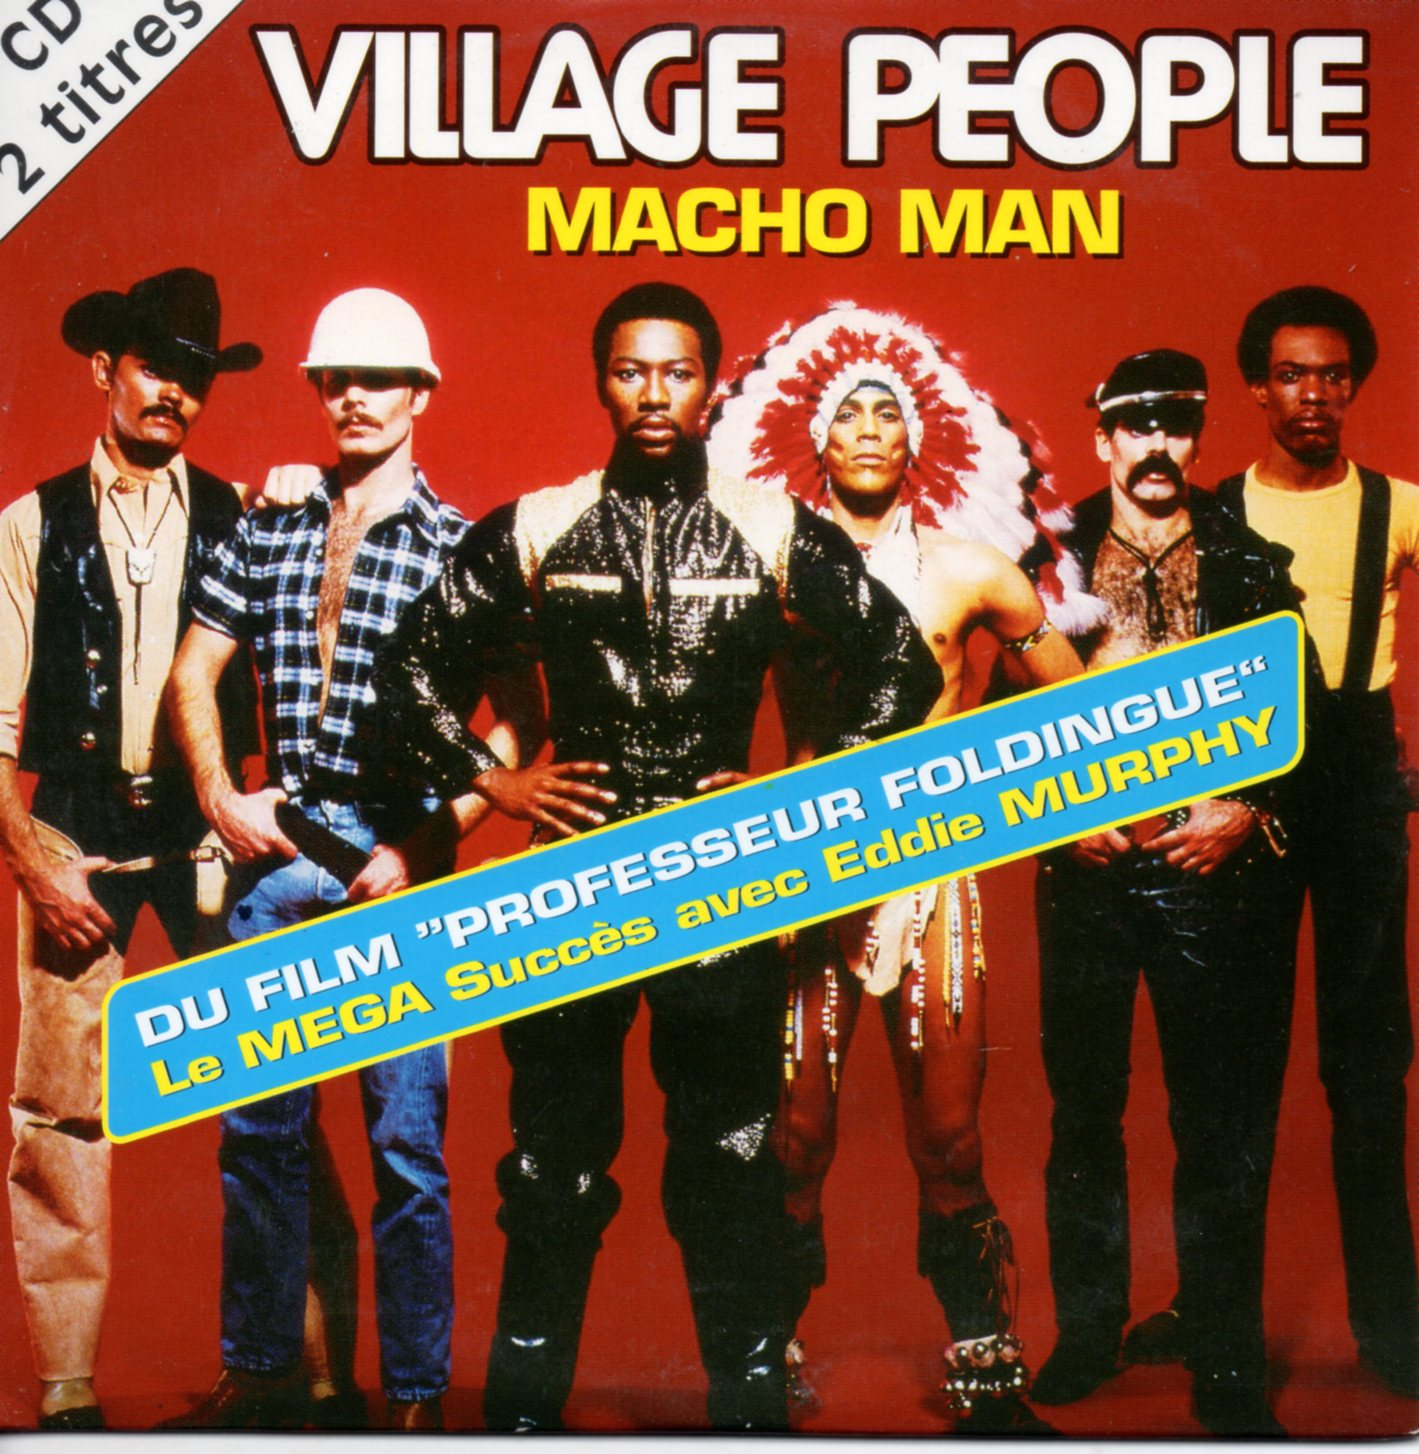 VILLAGE PEOPLE - Macho Man 2-track Card Sleeve